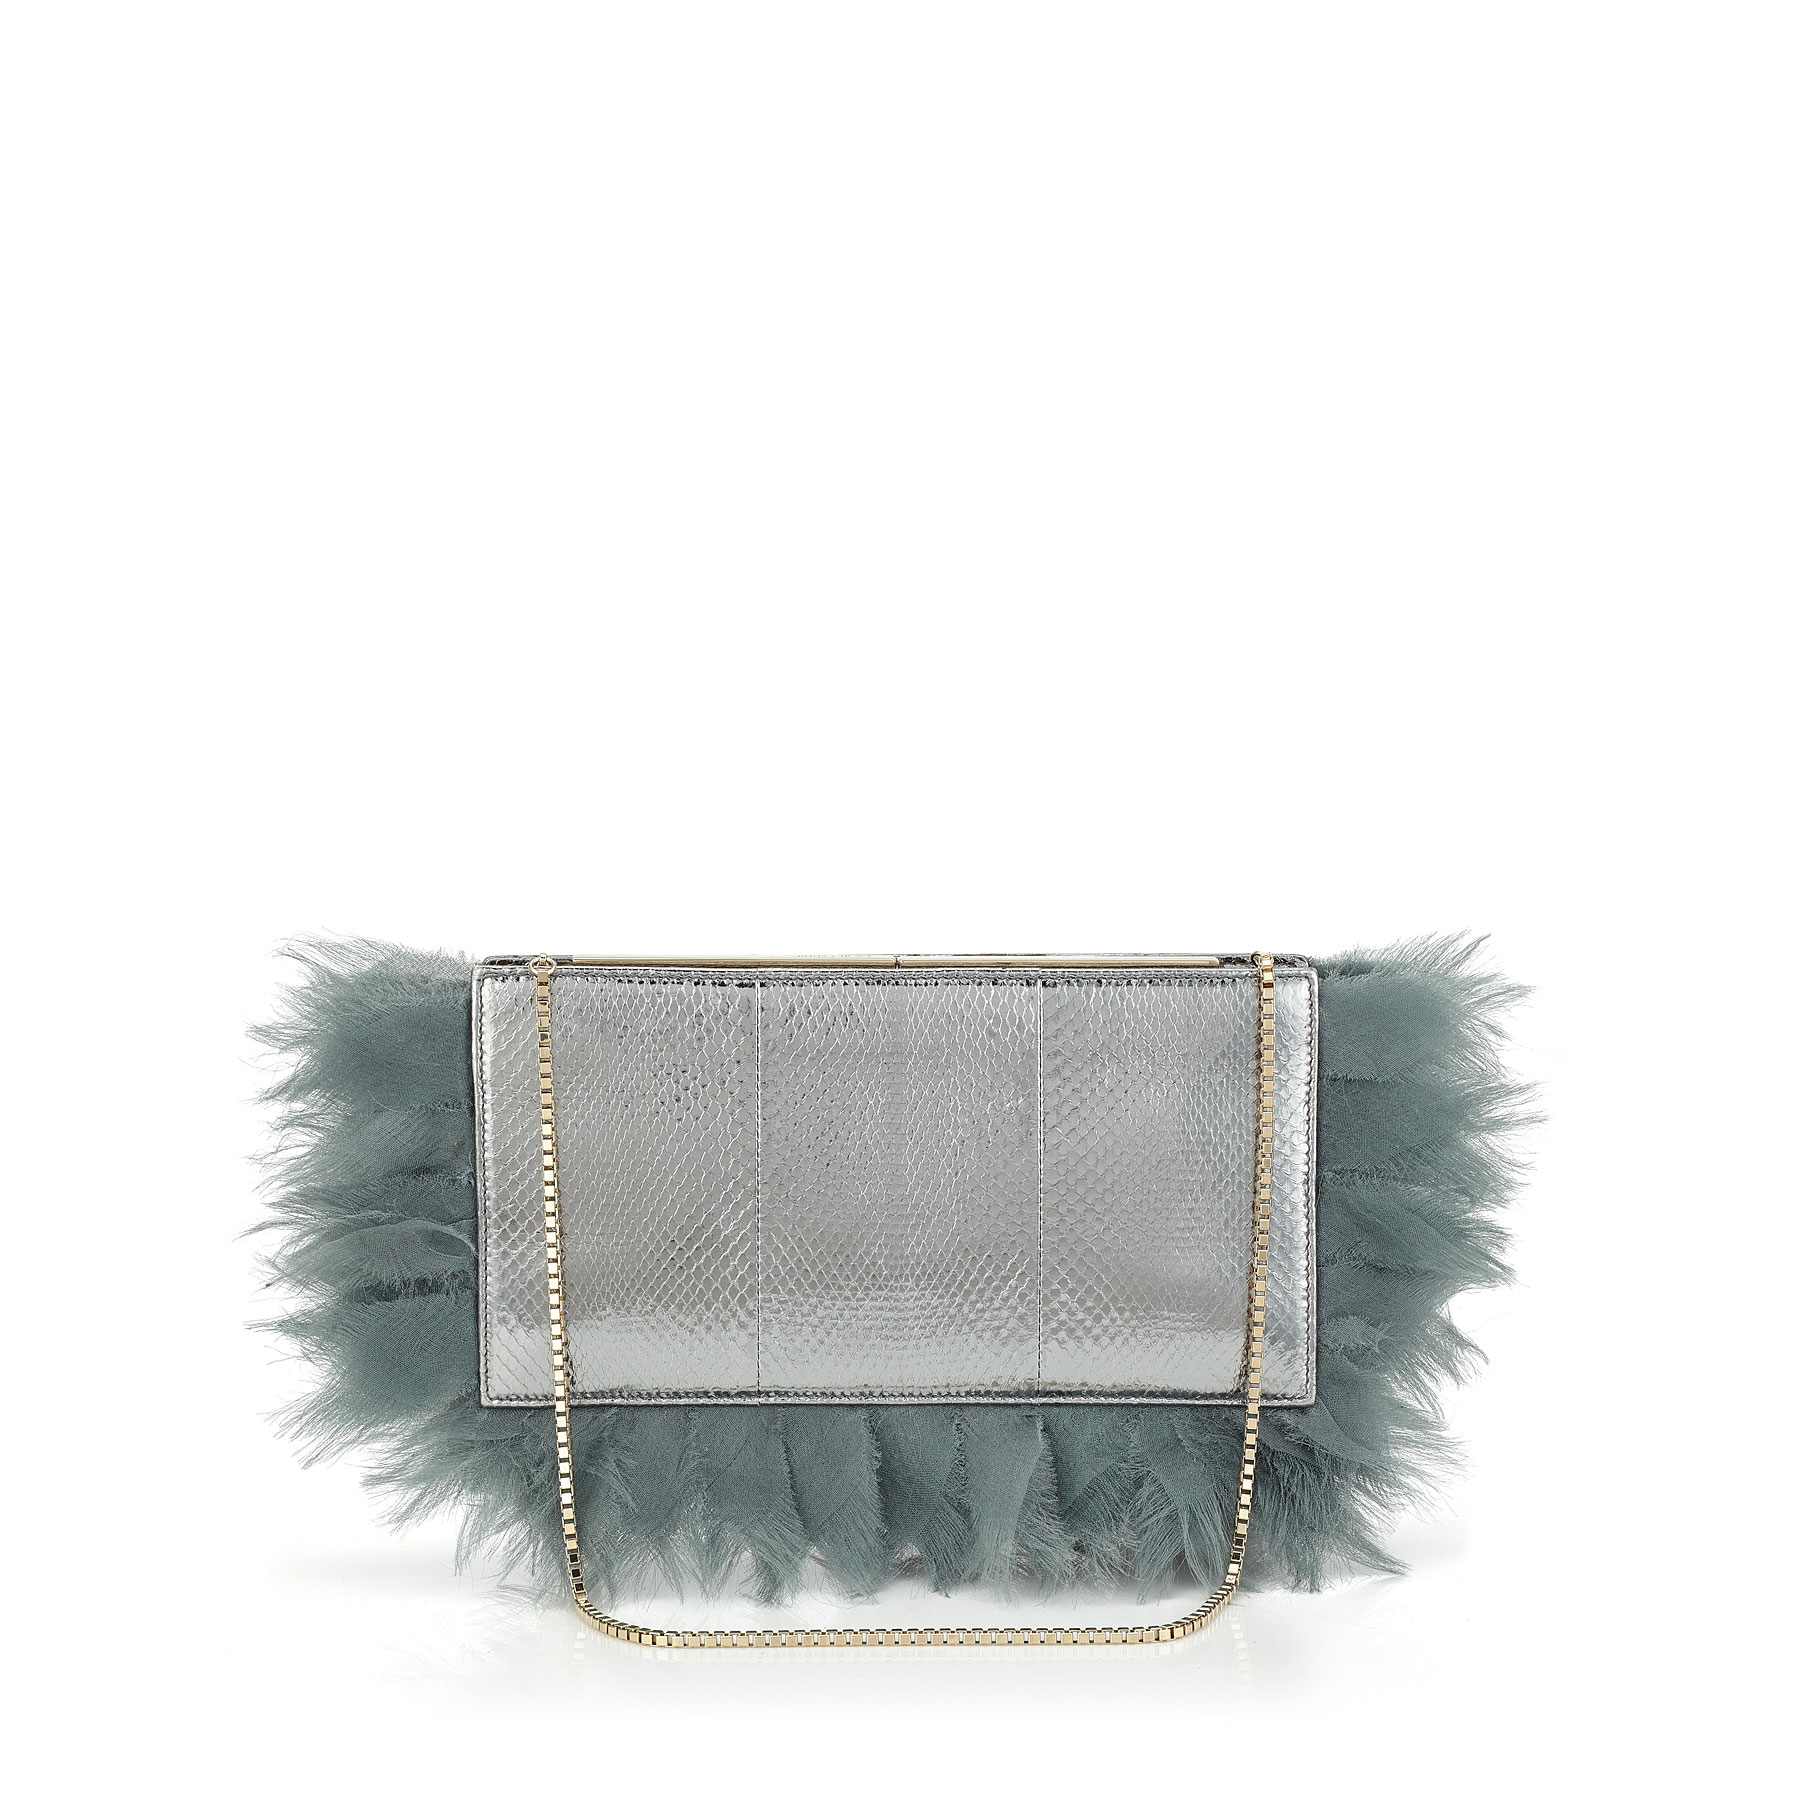 TUX Silver Metallic Watersnake with Fabric Feather Embroidery Clutch Bag